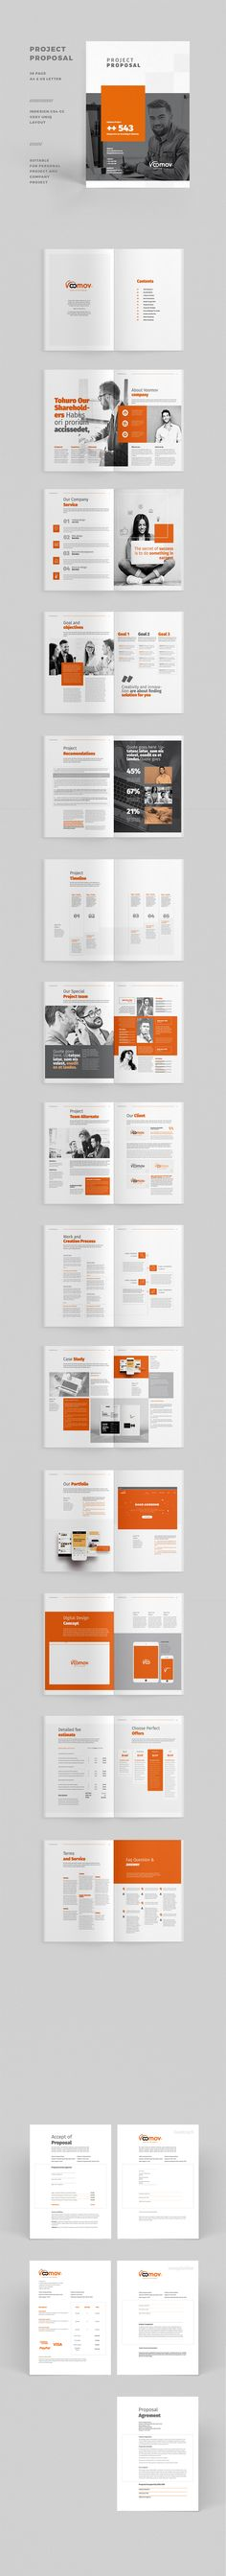 Creative Annual Brochure Template InDesign INDD Brochure - proposal layouts